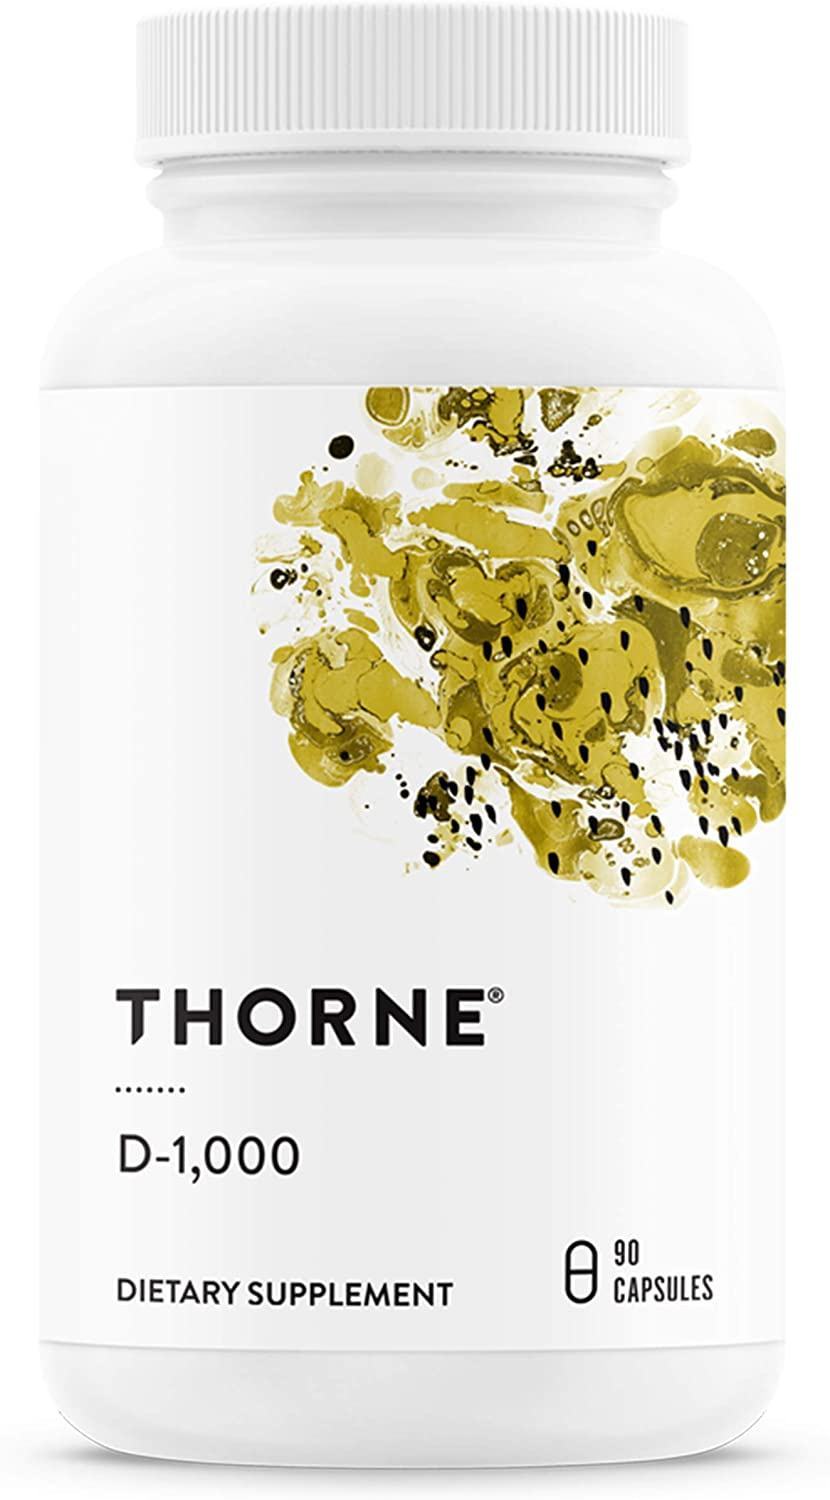 Thorne Research - Vitamin D-1000 - Vitamin D3 Supplement (1,000 IU) for Healthy Bones and Muscles - 90 Capsules: Health & Personal Care